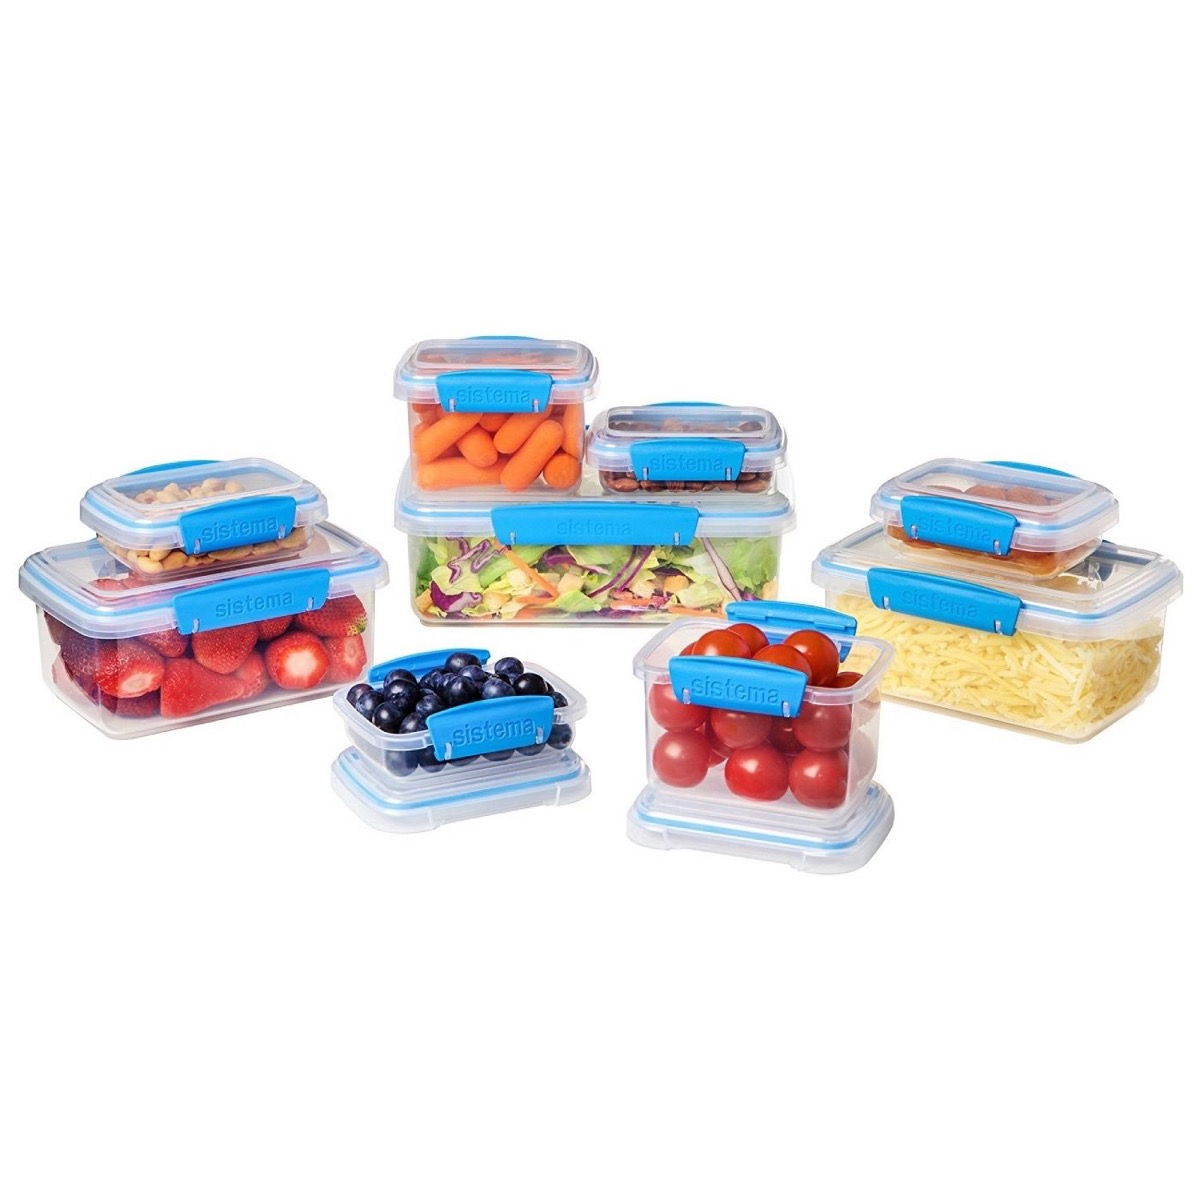 clear food containers with blue locking mechanisms, cheap meal prep containers